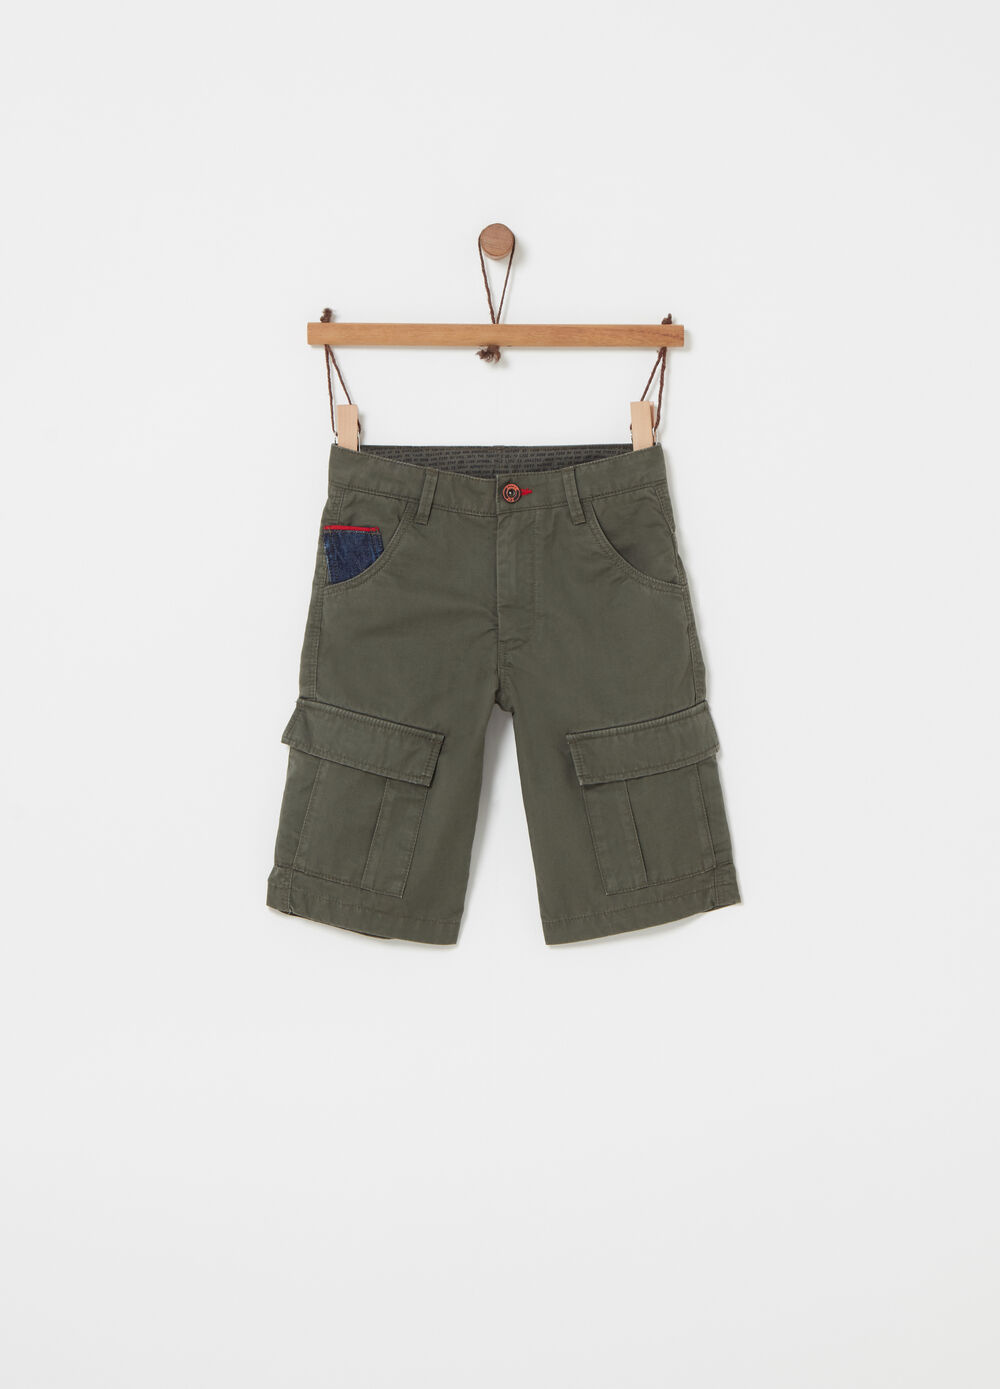 100% cotton twill shorts with pockets